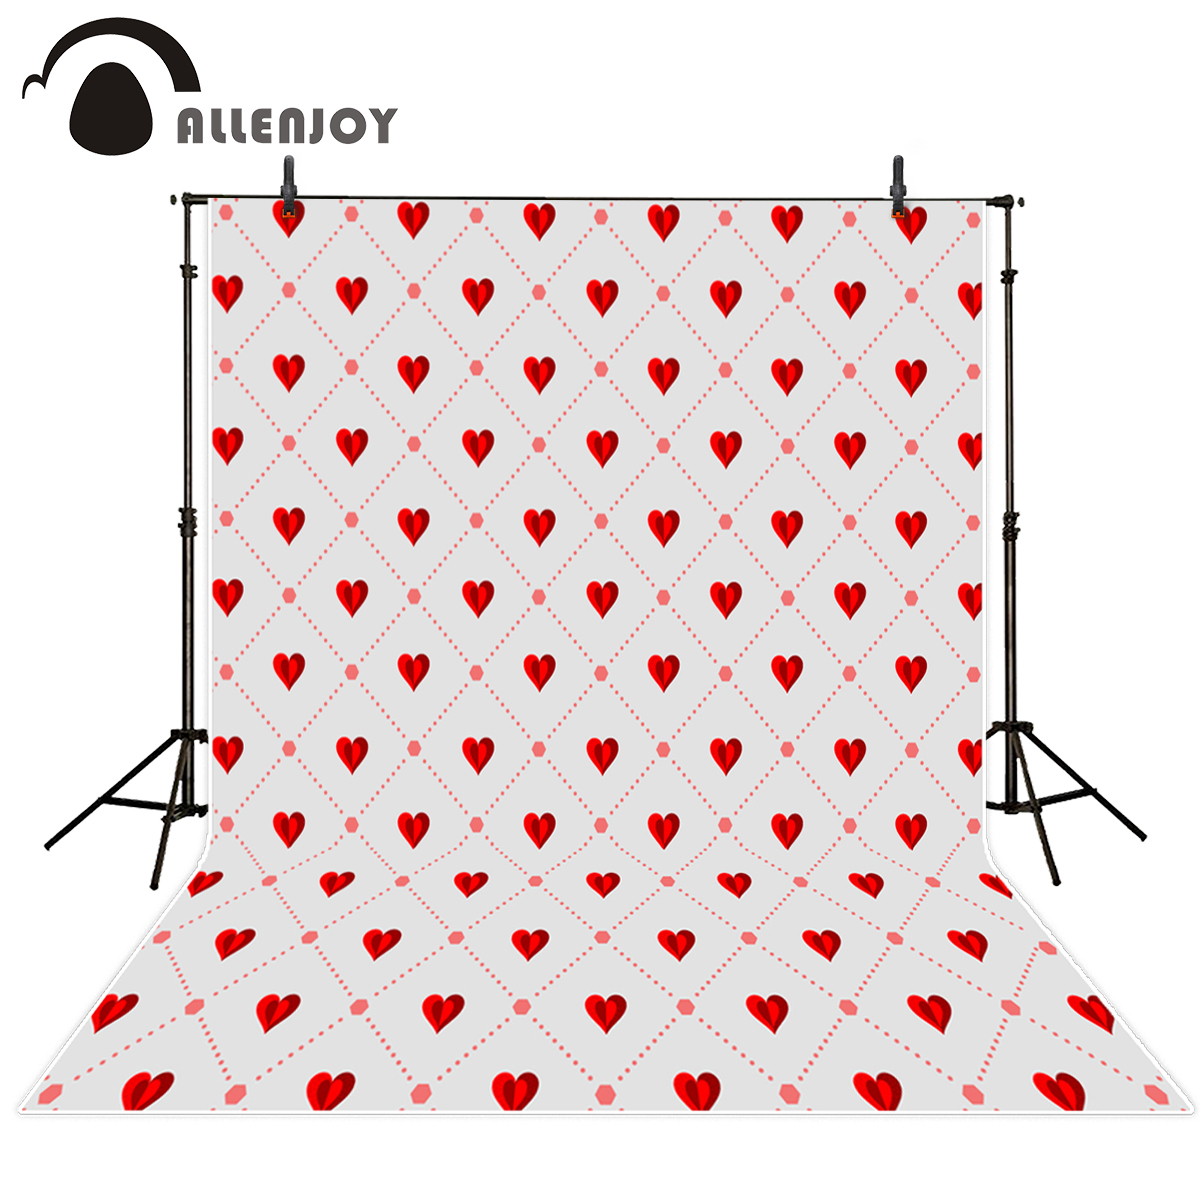 Allenjoy photography backdrops Valentine's Day love line wedding romantic photo background vinyl photography vinyl backdrops allenjoy photography backdrops love pink romantic background photography wedding backdrop for valentine s day